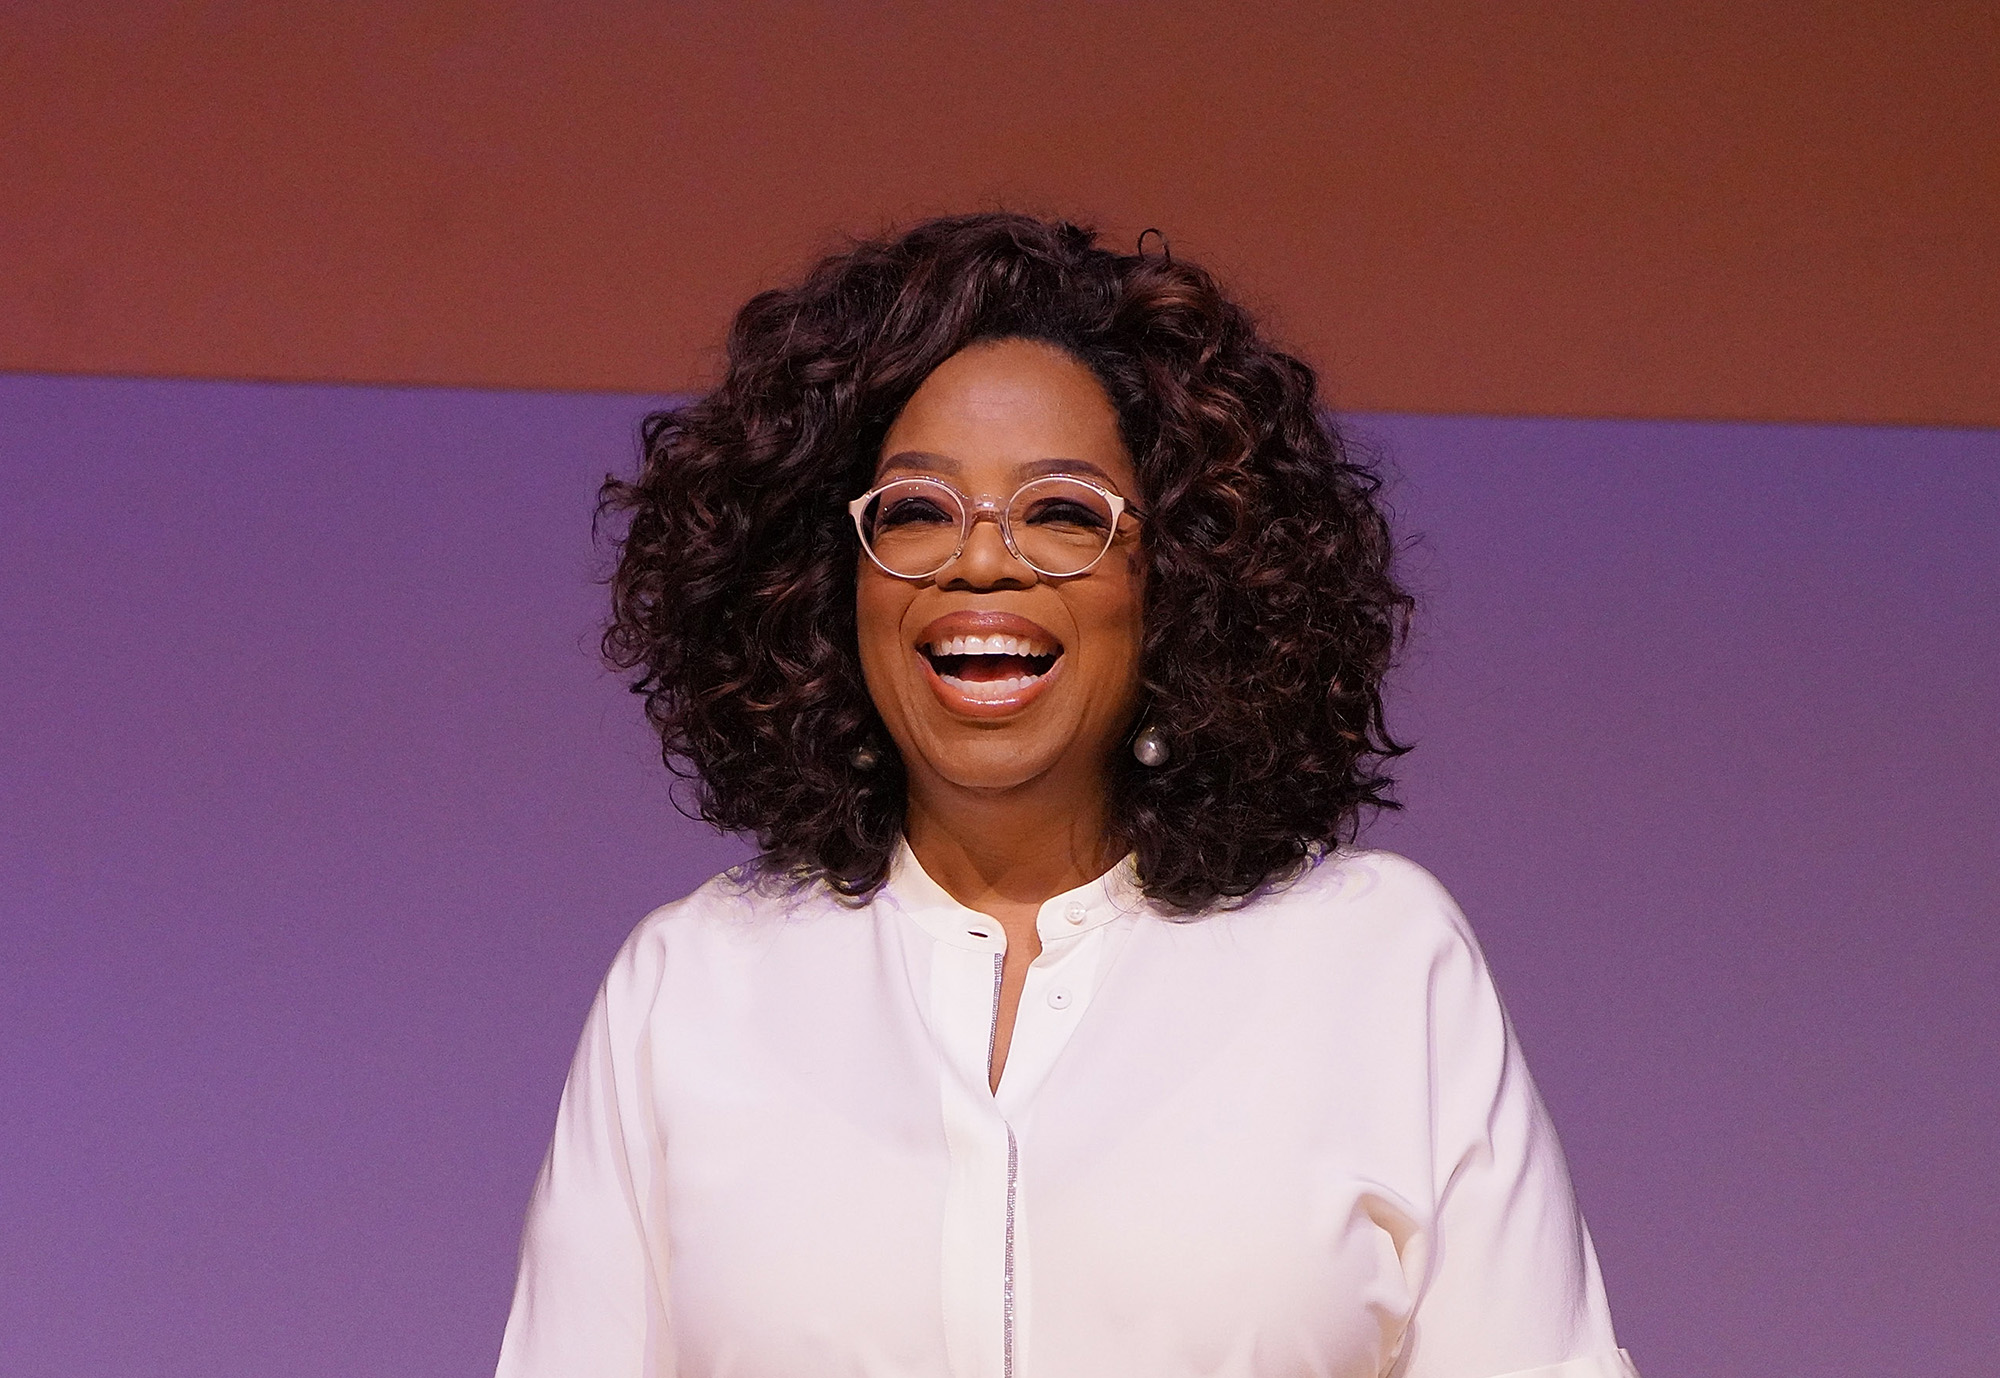 Oprah says the world is missing the provision of a core moral center and Churches used to provide that.